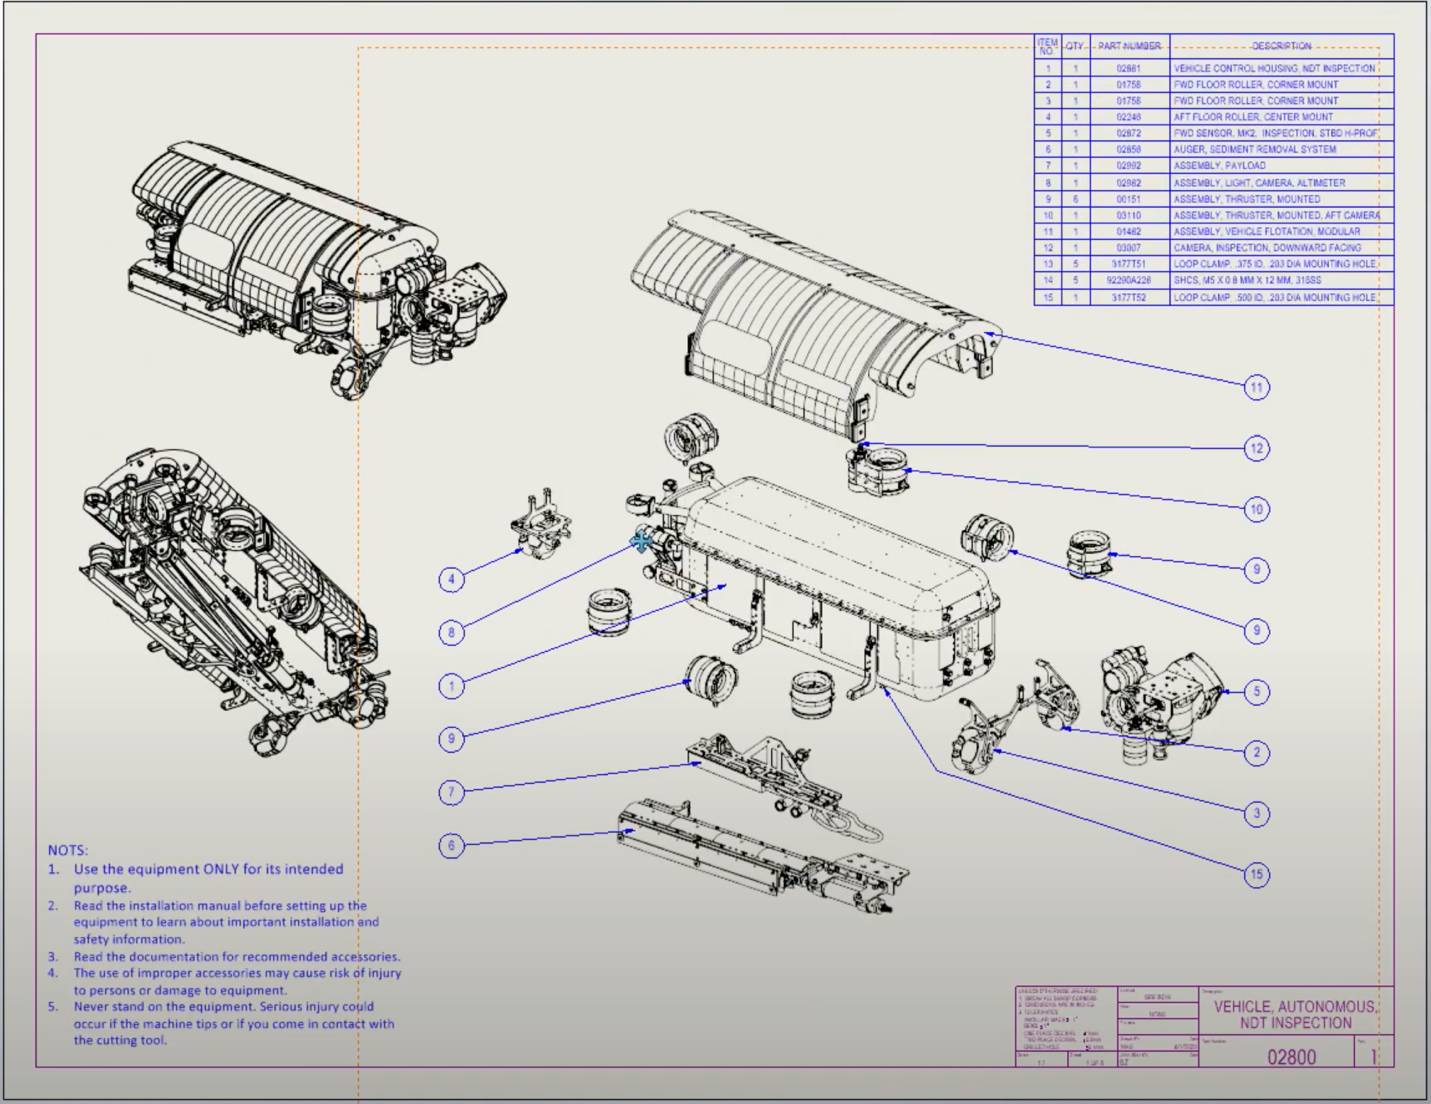 whats new solidworks 2021 picture